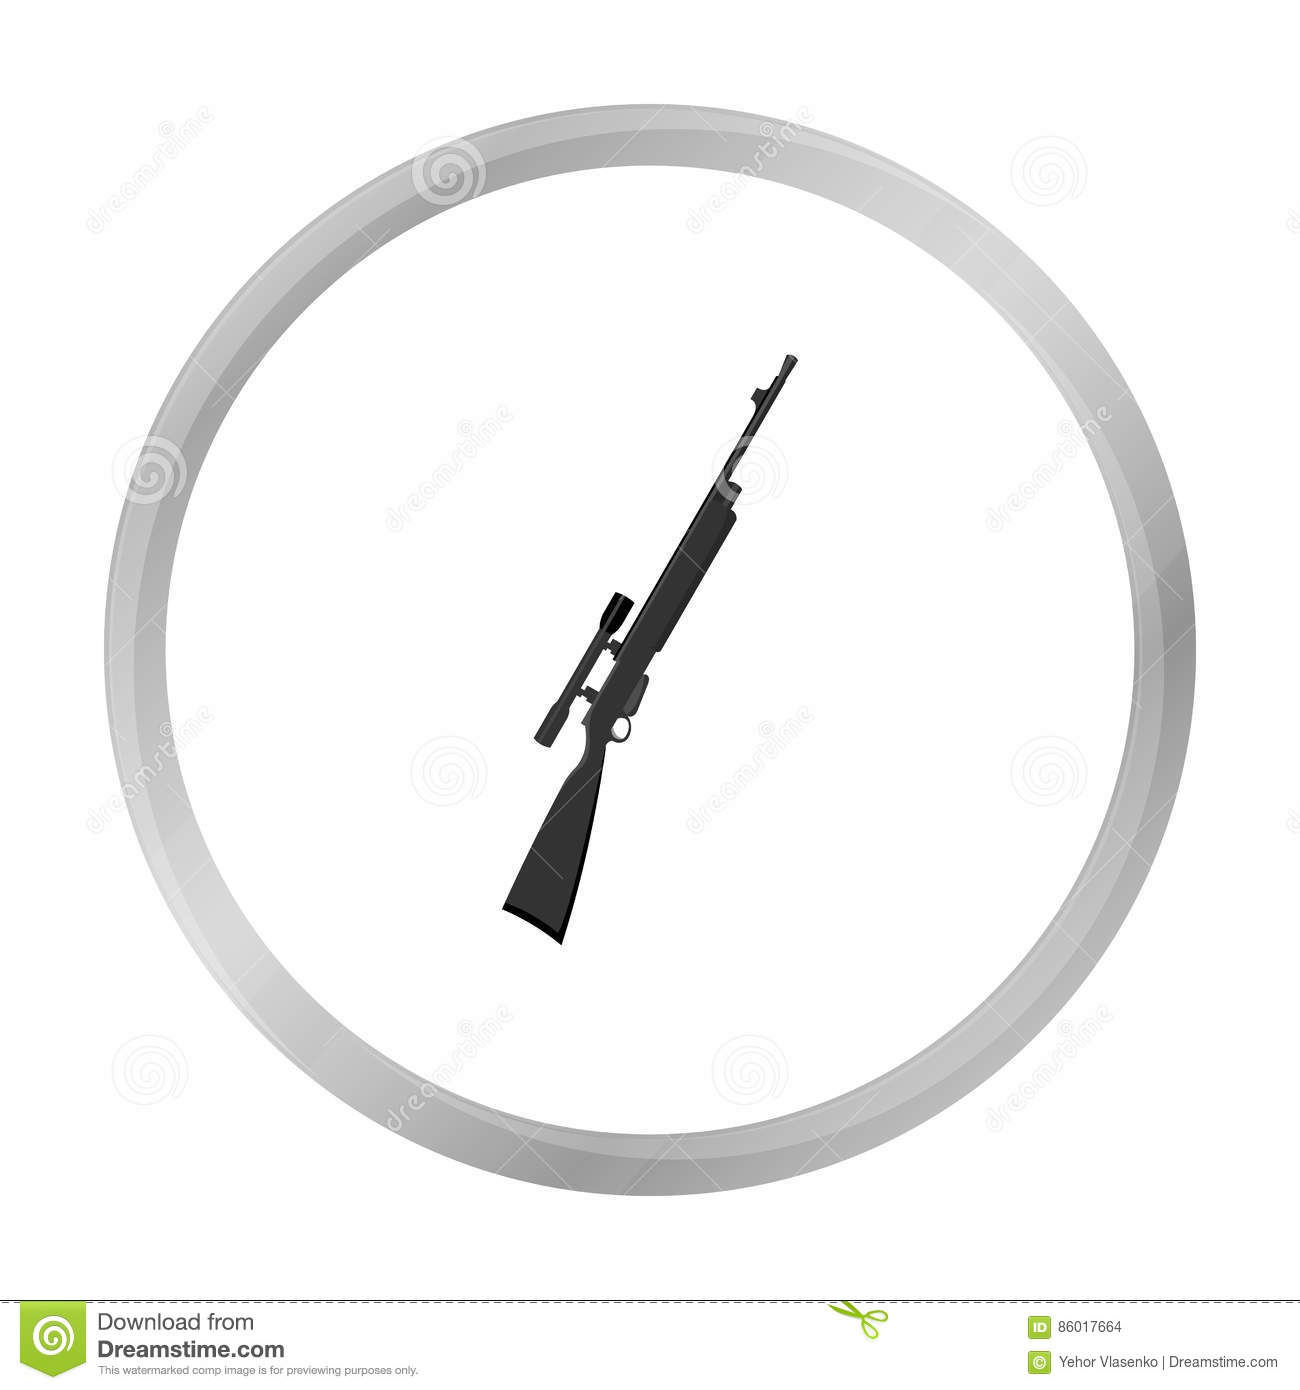 Rifle sniper gun icon monochrome. Single weapon icon from the big ammunition, arms set.